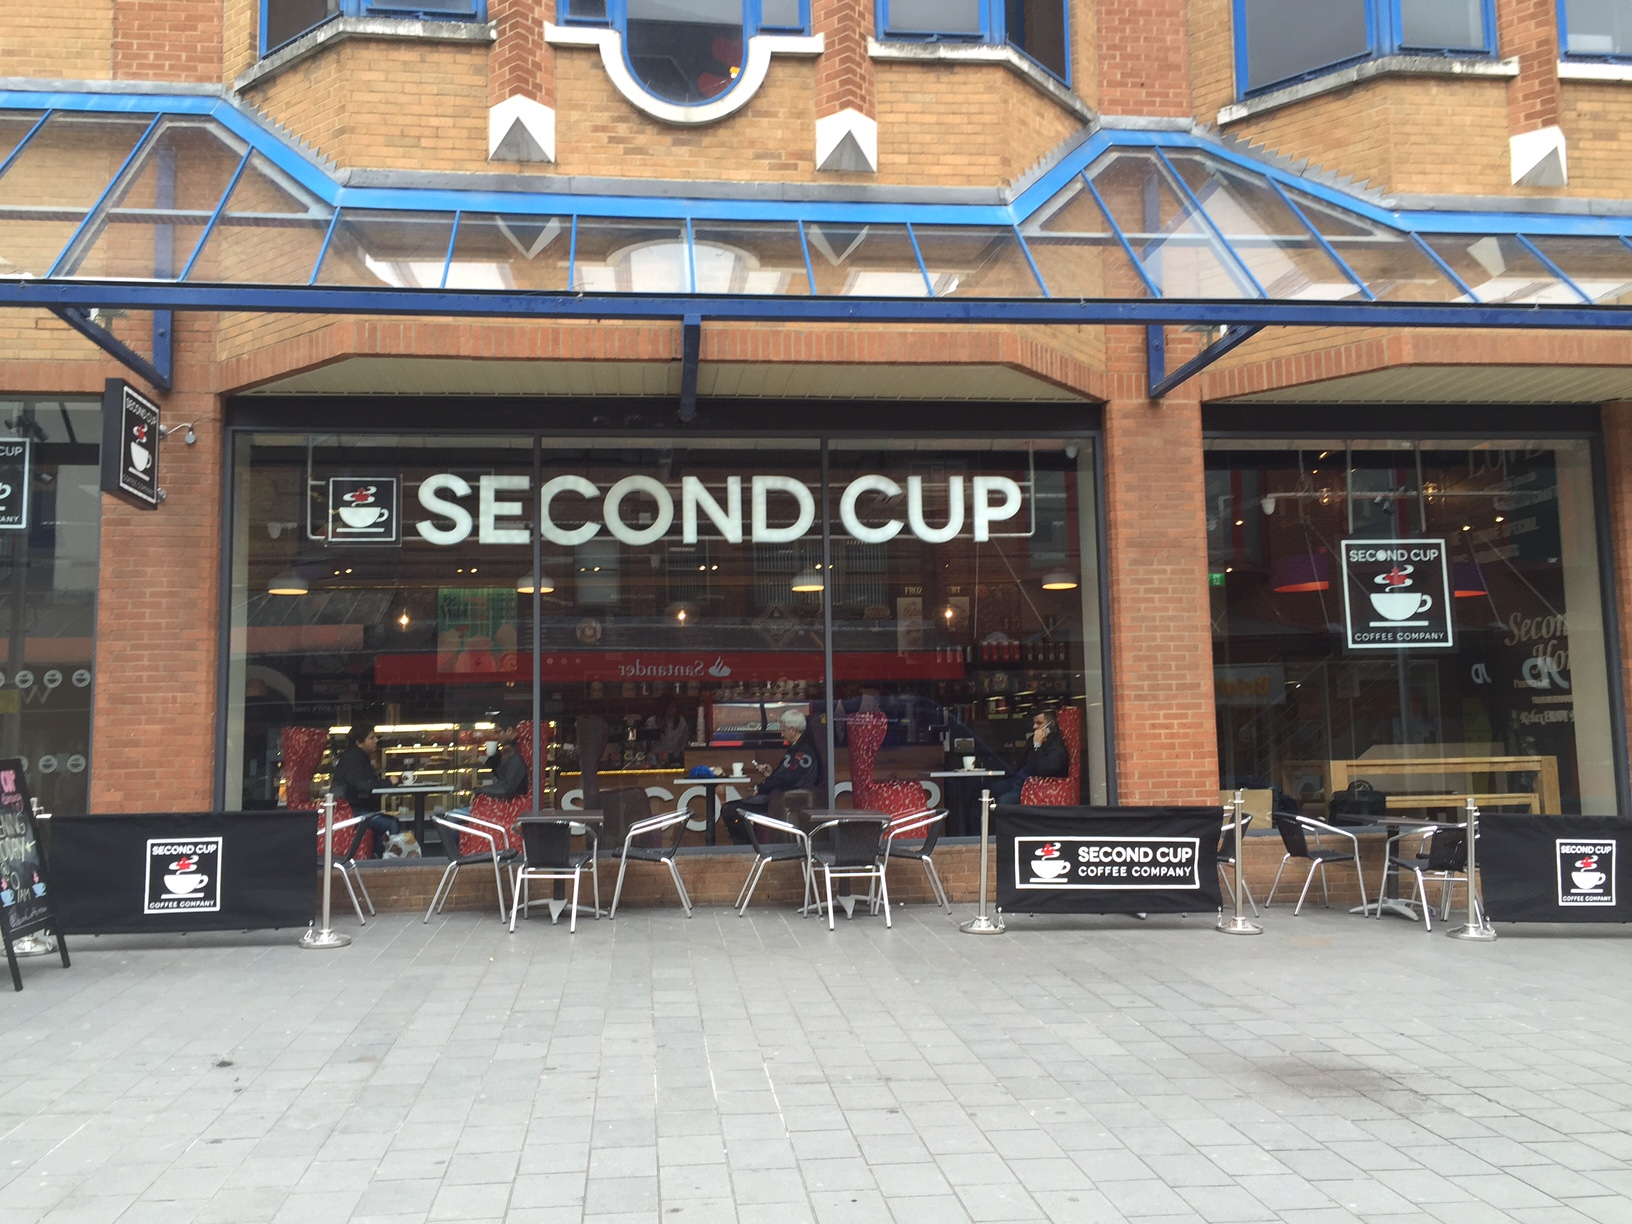 Second Cup Coffee Company Begins Brewing Excitement In